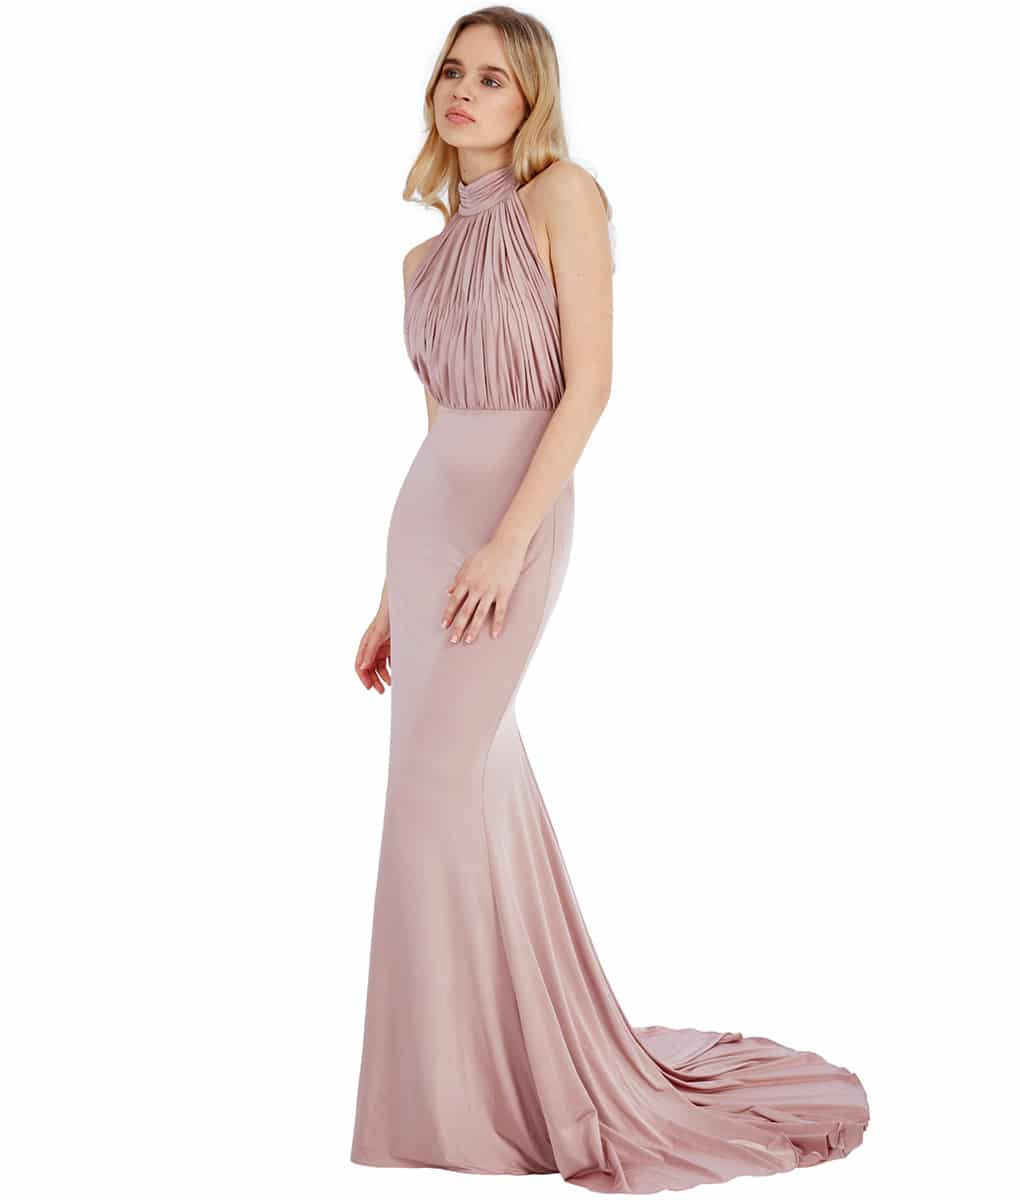 Alila-Blush-Backless-long-Dress-City-Goddess-front